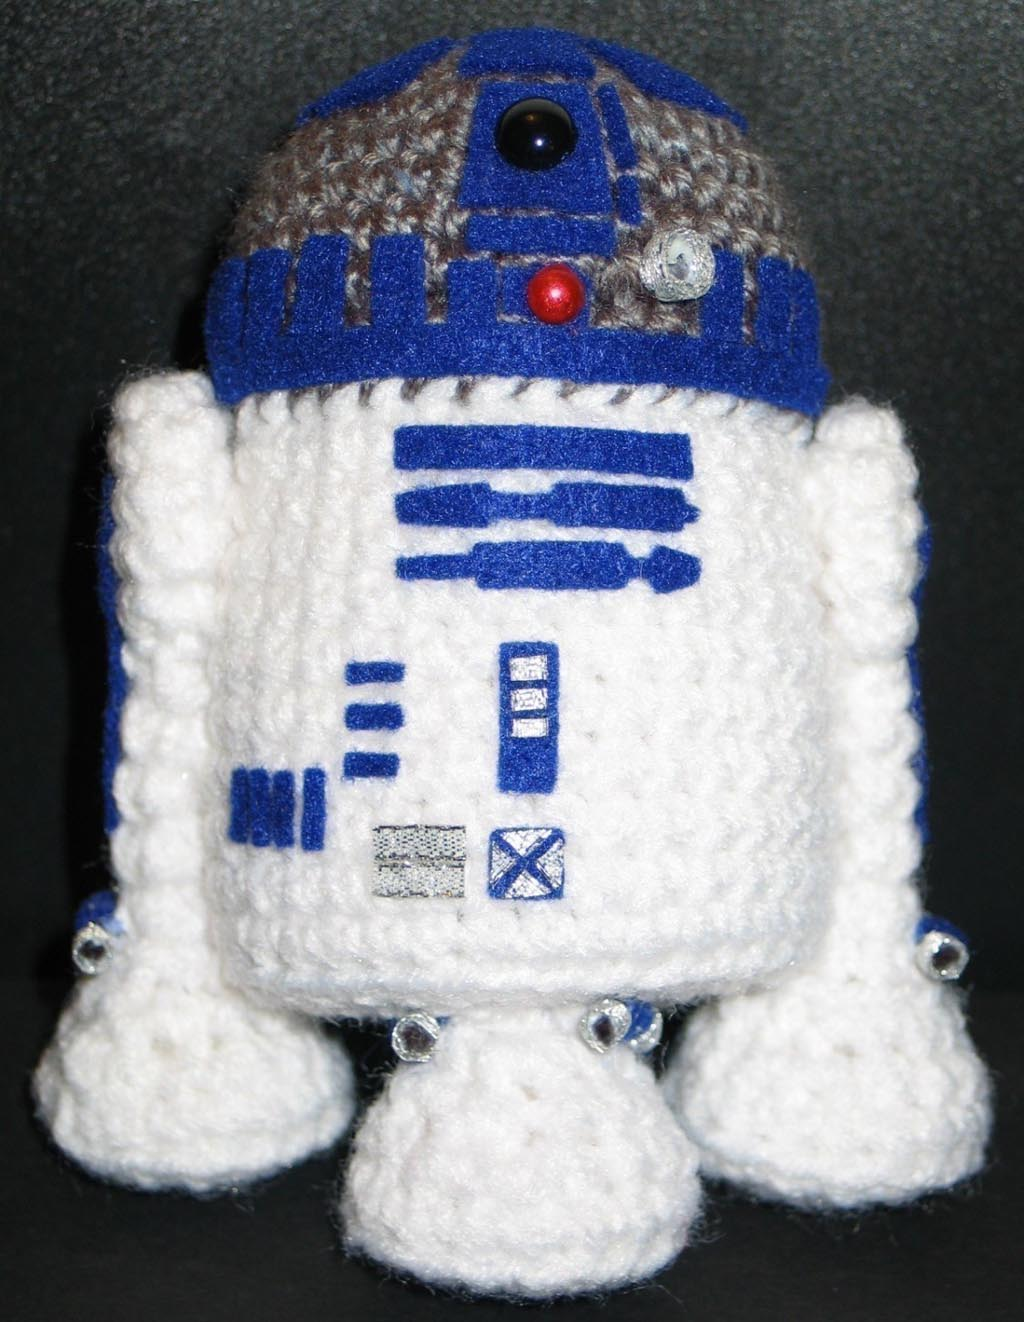 Free Crochet Star Wars Doll Patterns : Make Your Own Star Wars R2-D2 Amigurumi Gadgetsin